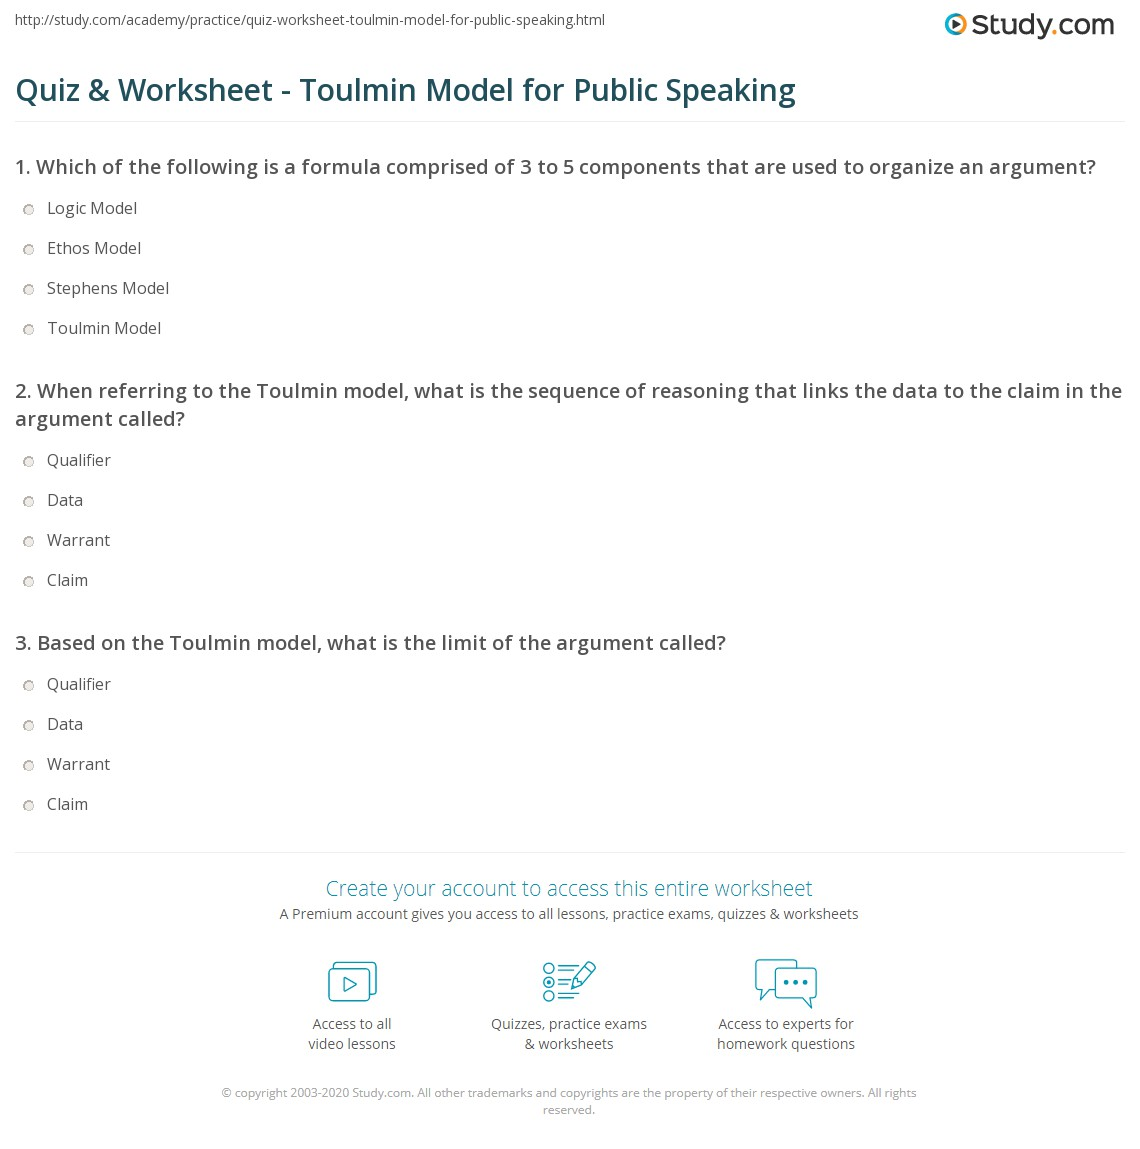 Quiz & Worksheet - Toulmin Model for Public Speaking | Study.com